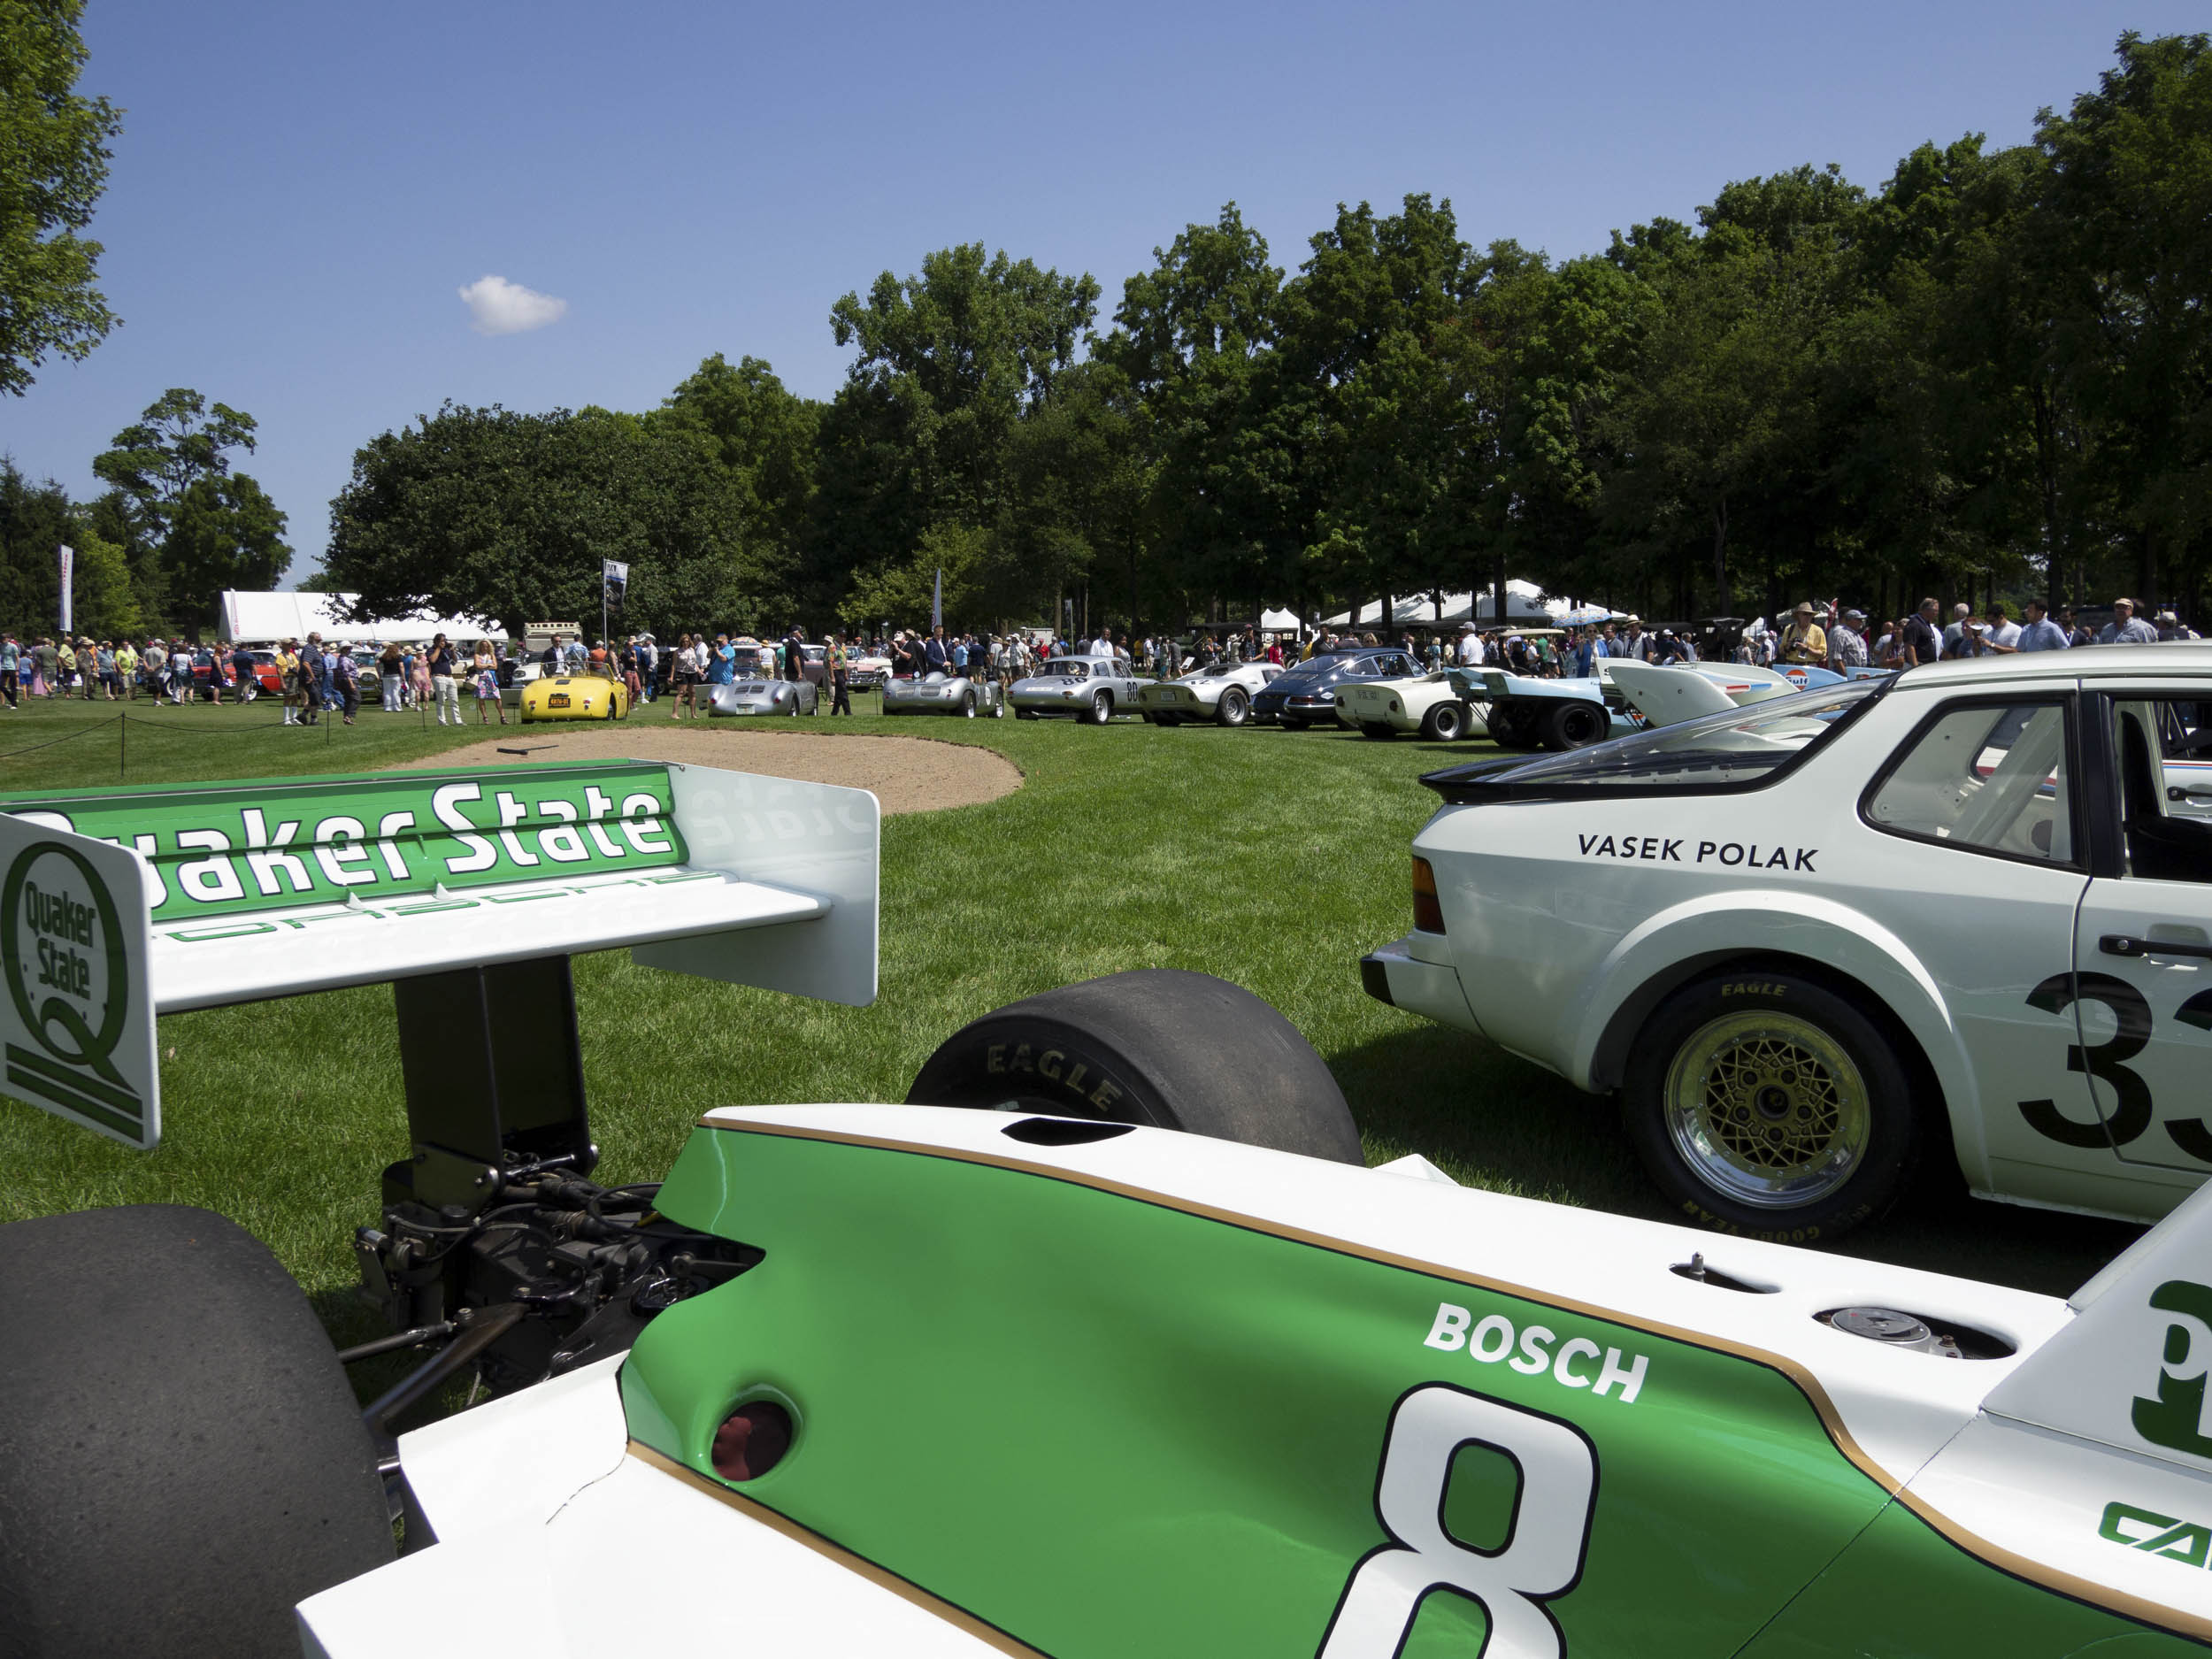 1989 Porsche Indy - Quaker State by March wing